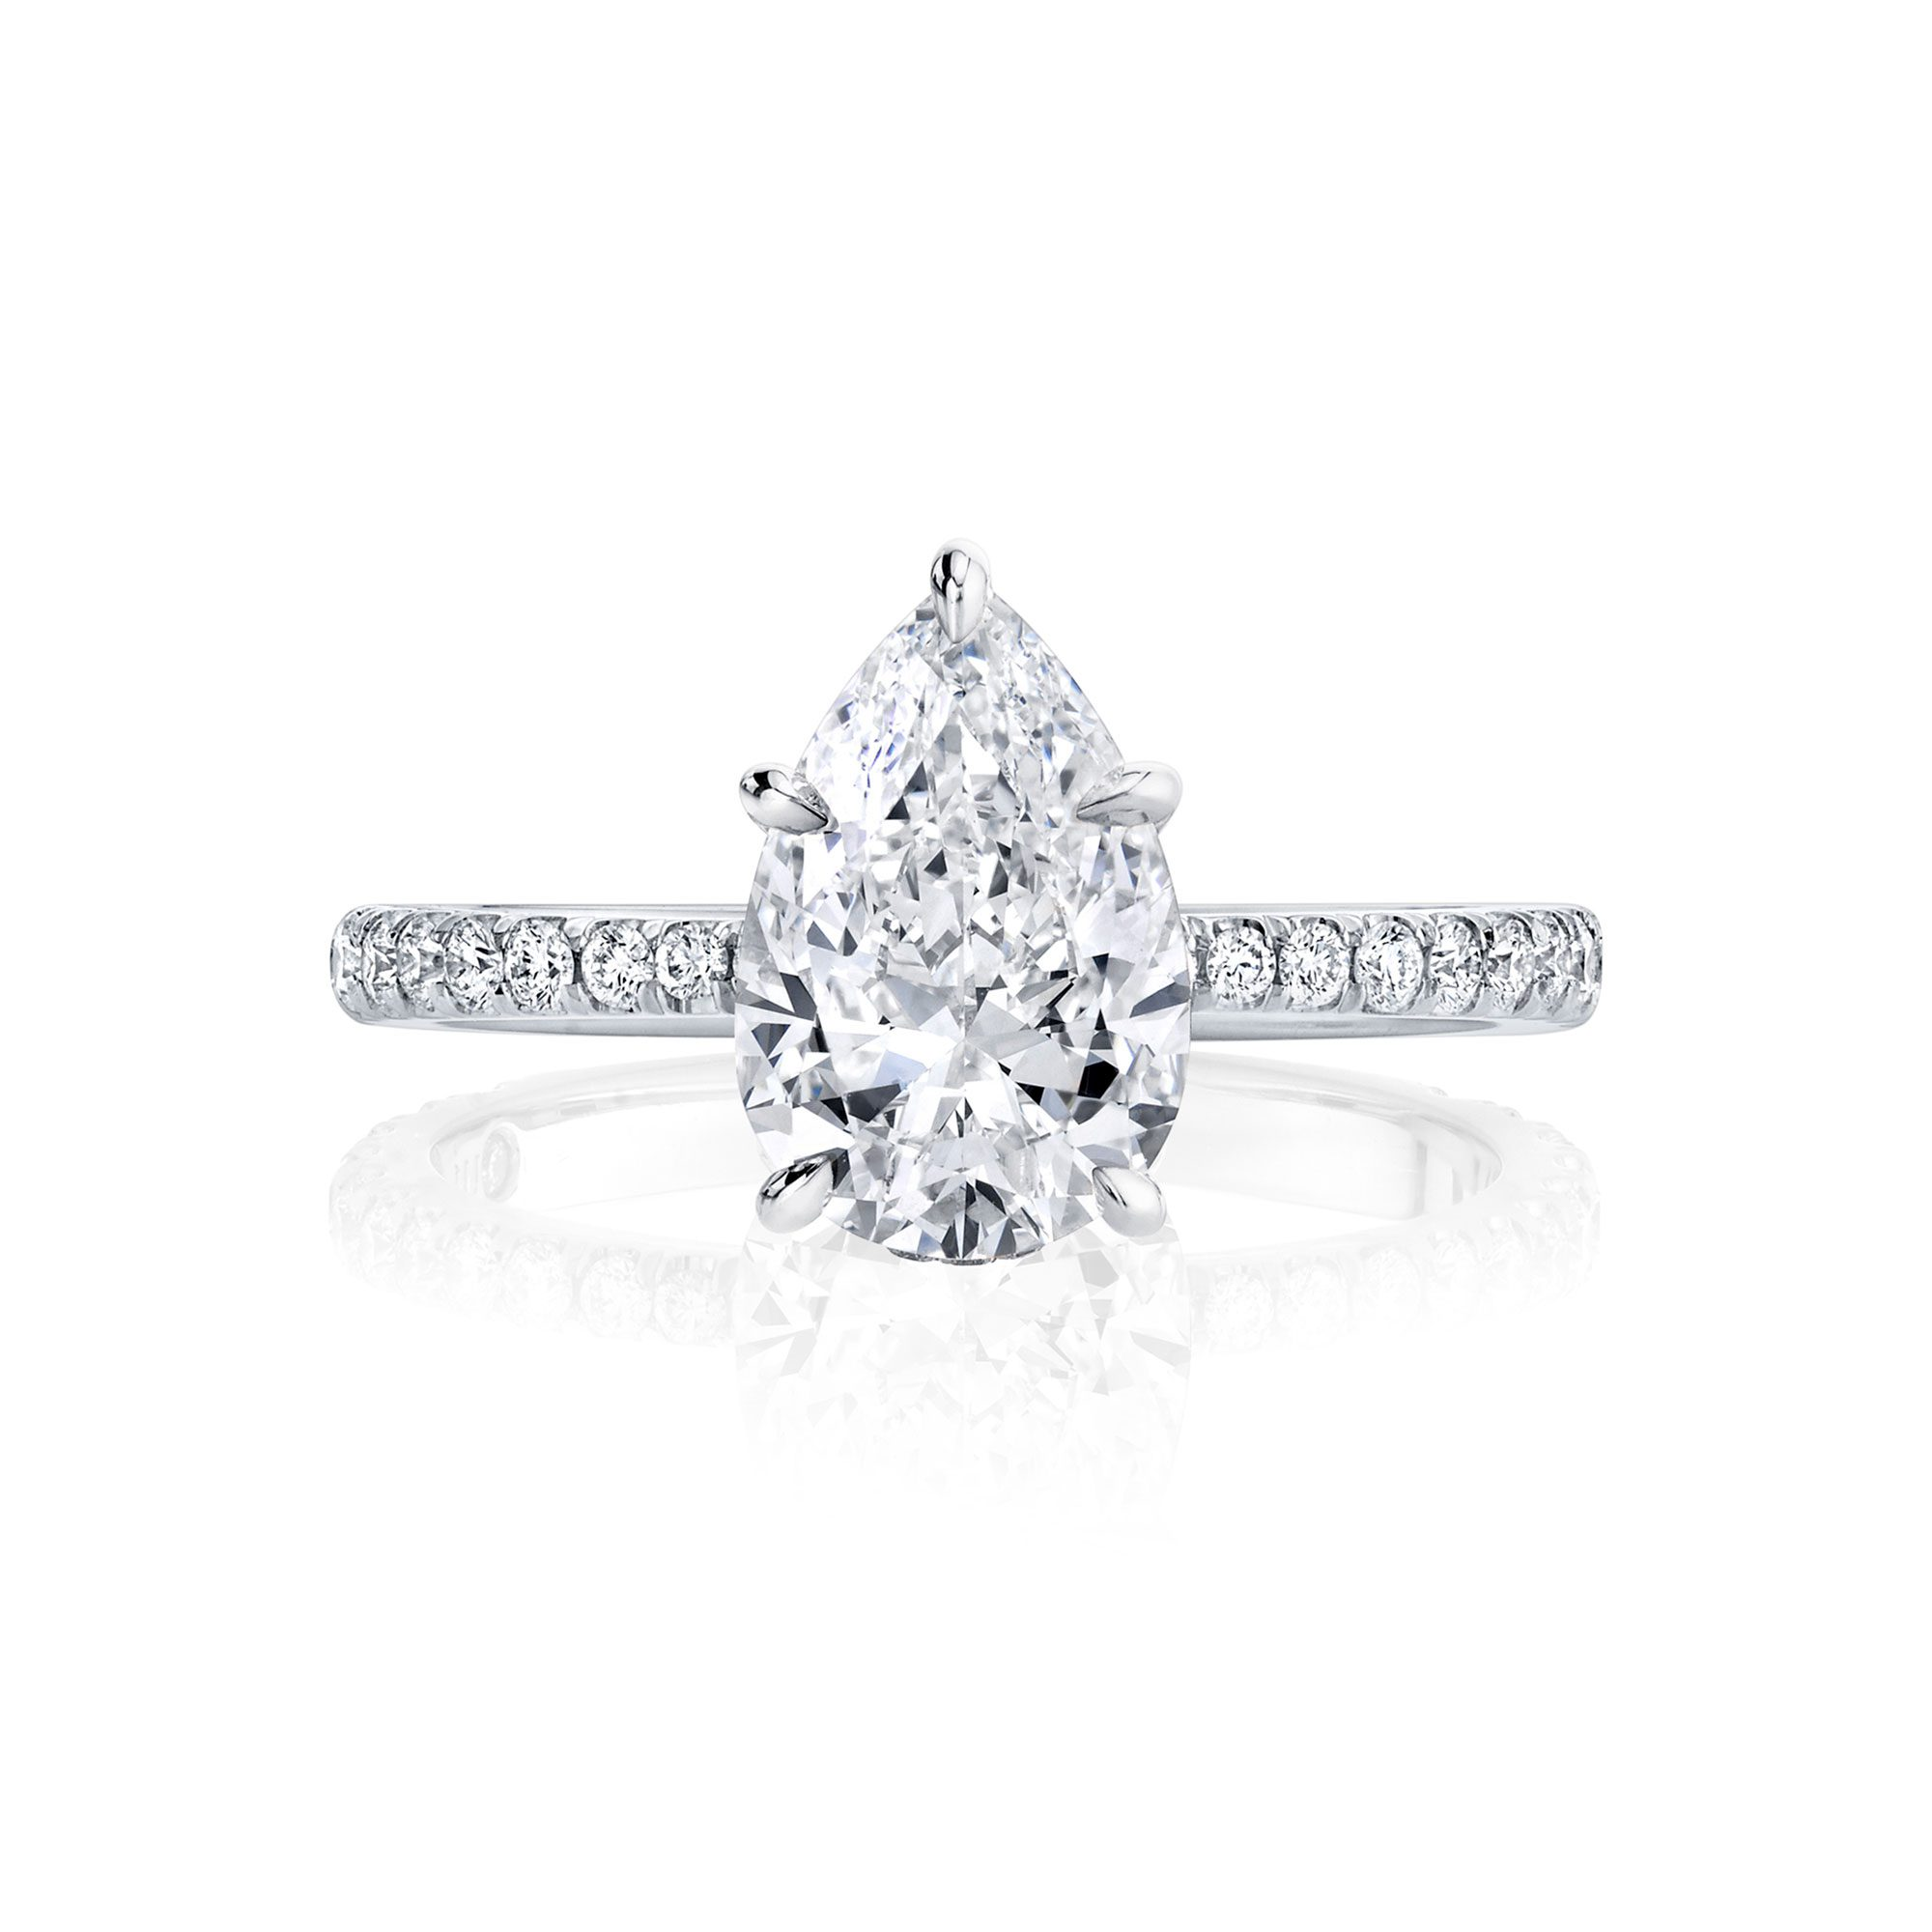 Eloise Solitaire Pear Cut Lab Grown Diamond Engagement Ring with Pavé Band in White Gold